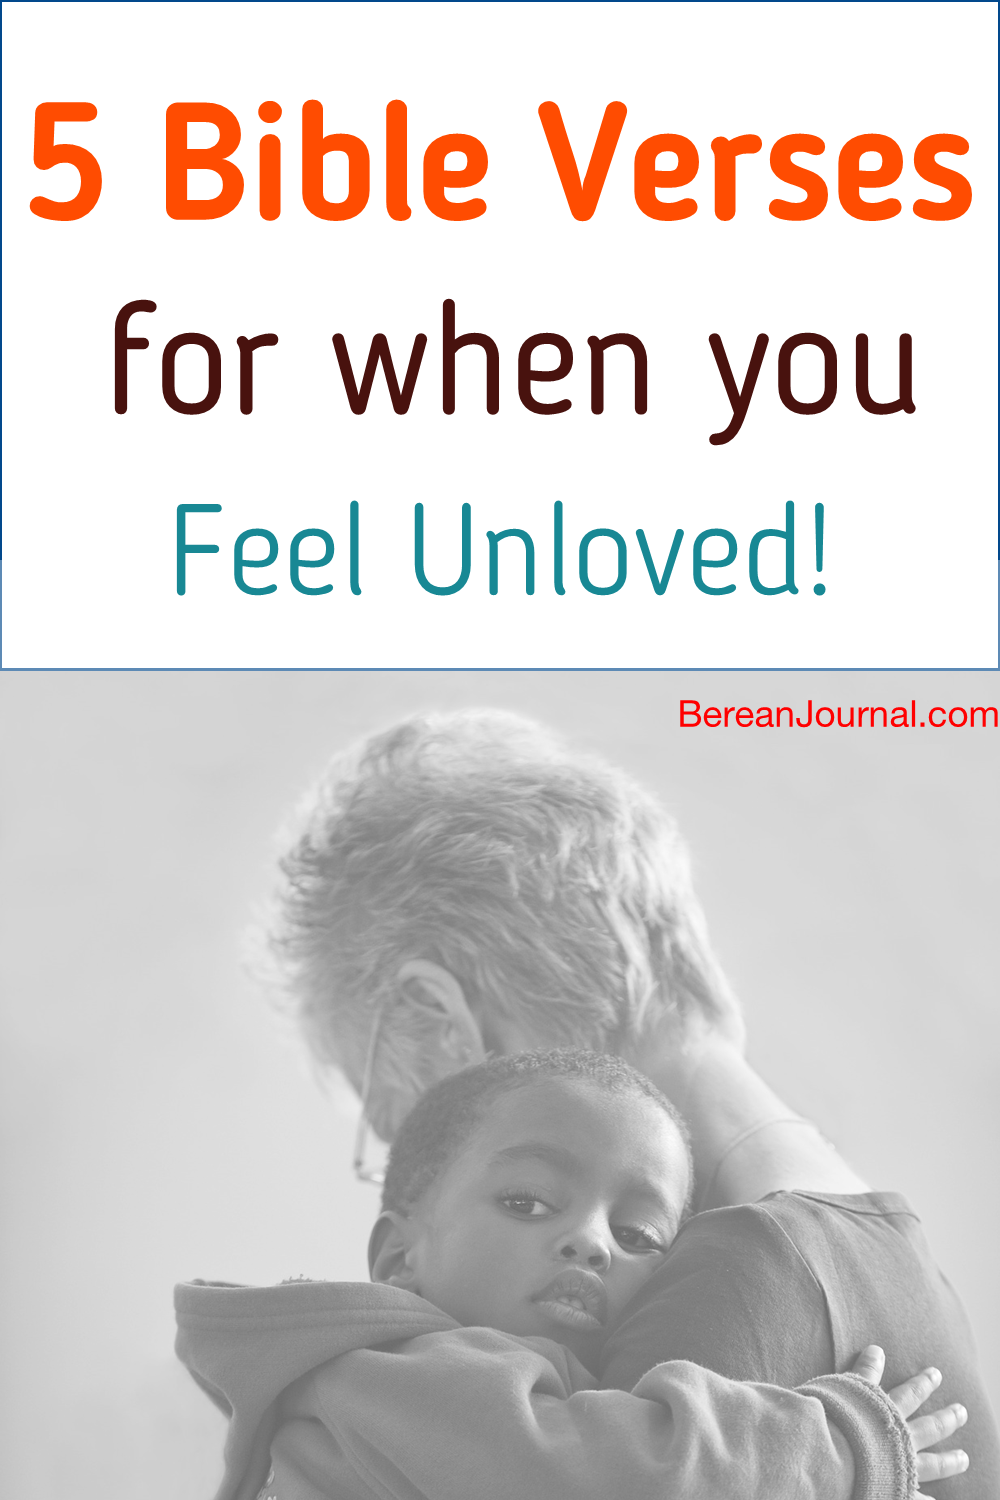 On those days when you are feeling unloved, Jesus Christ wants you to know that isn't the case. Find 5 Bible Verses for when you unloved and unwanted. For more inspiration follow me on Facebook @ www.facebook.com/BereanJournal